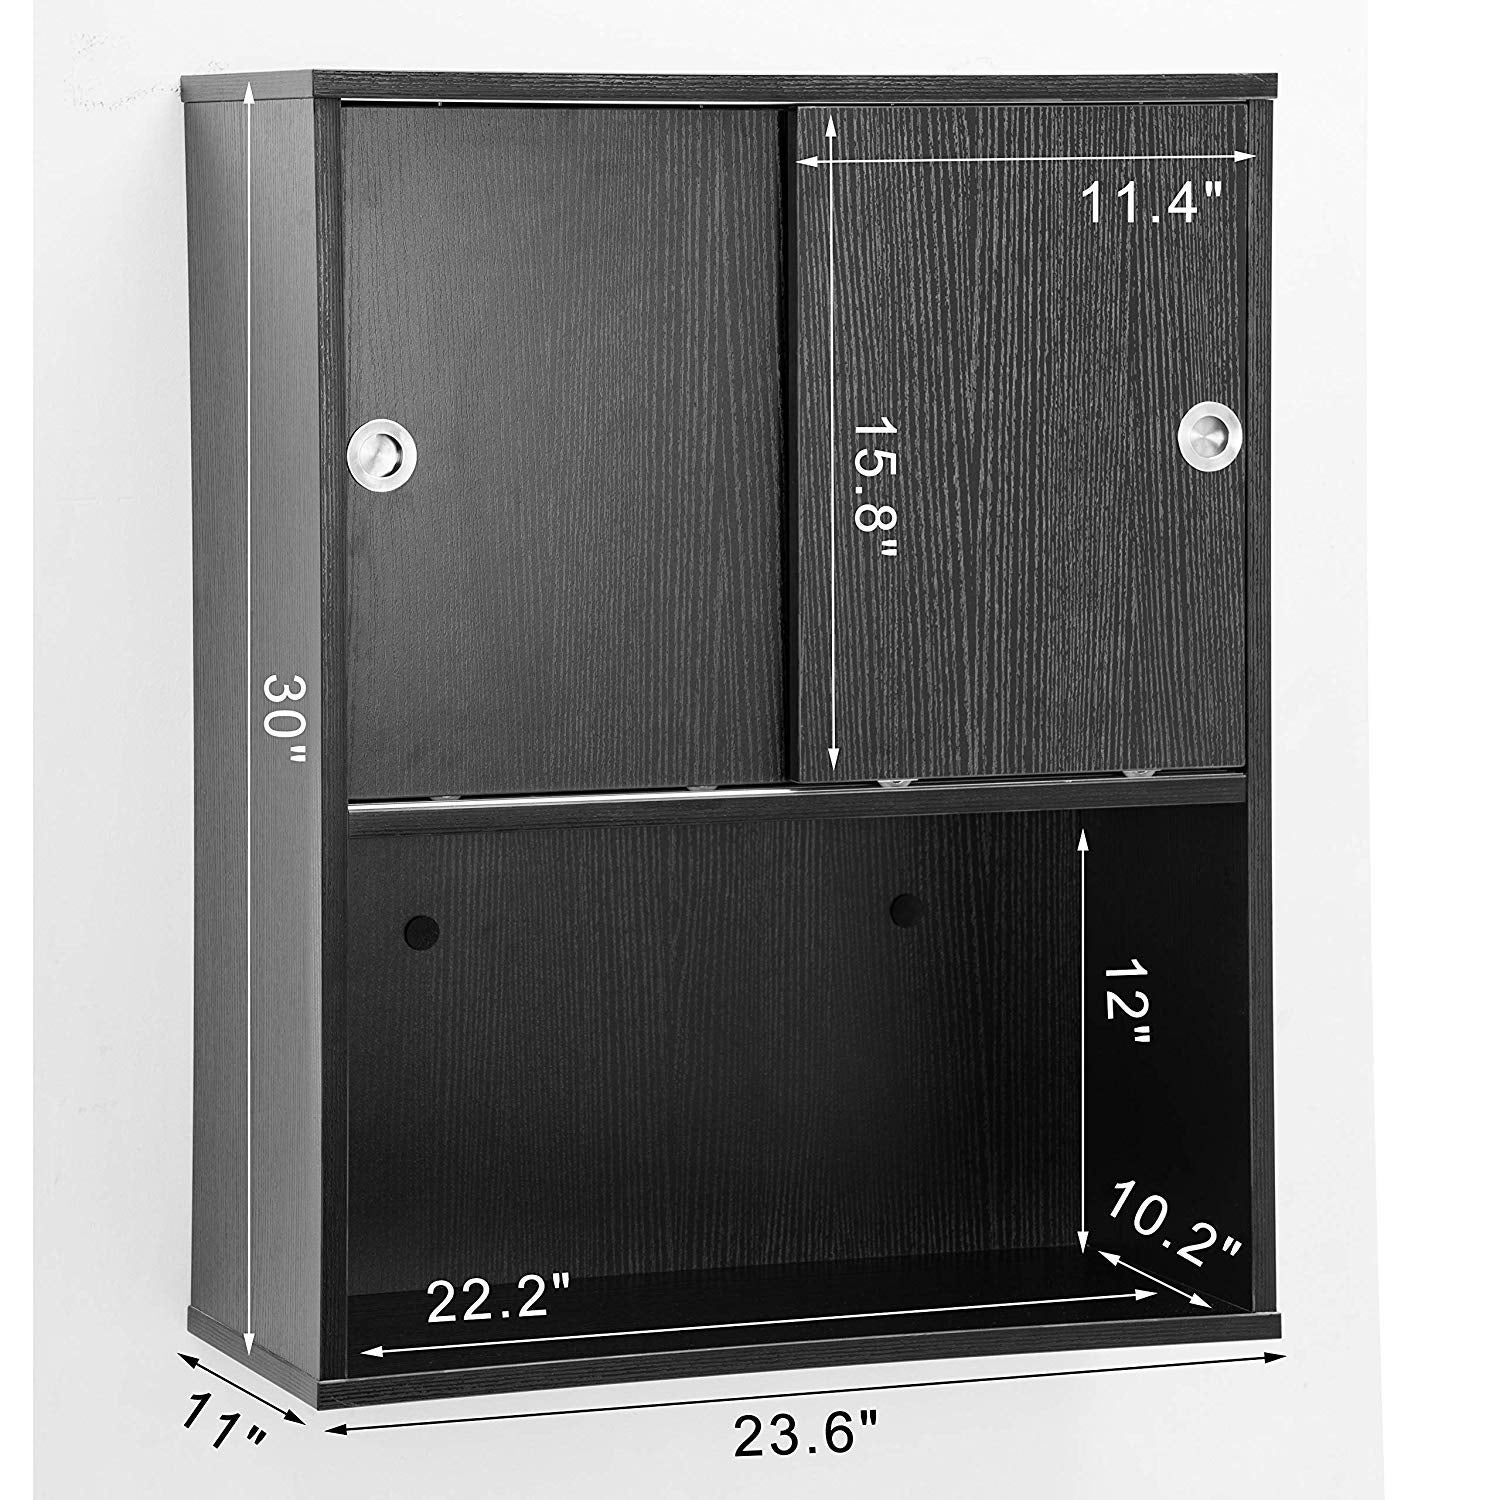 Barberpub Wall Mounted Styling Station Storage Cabinet With Sliding Door Salon Beauty Spa Equipment 7136 Overstock 29874762